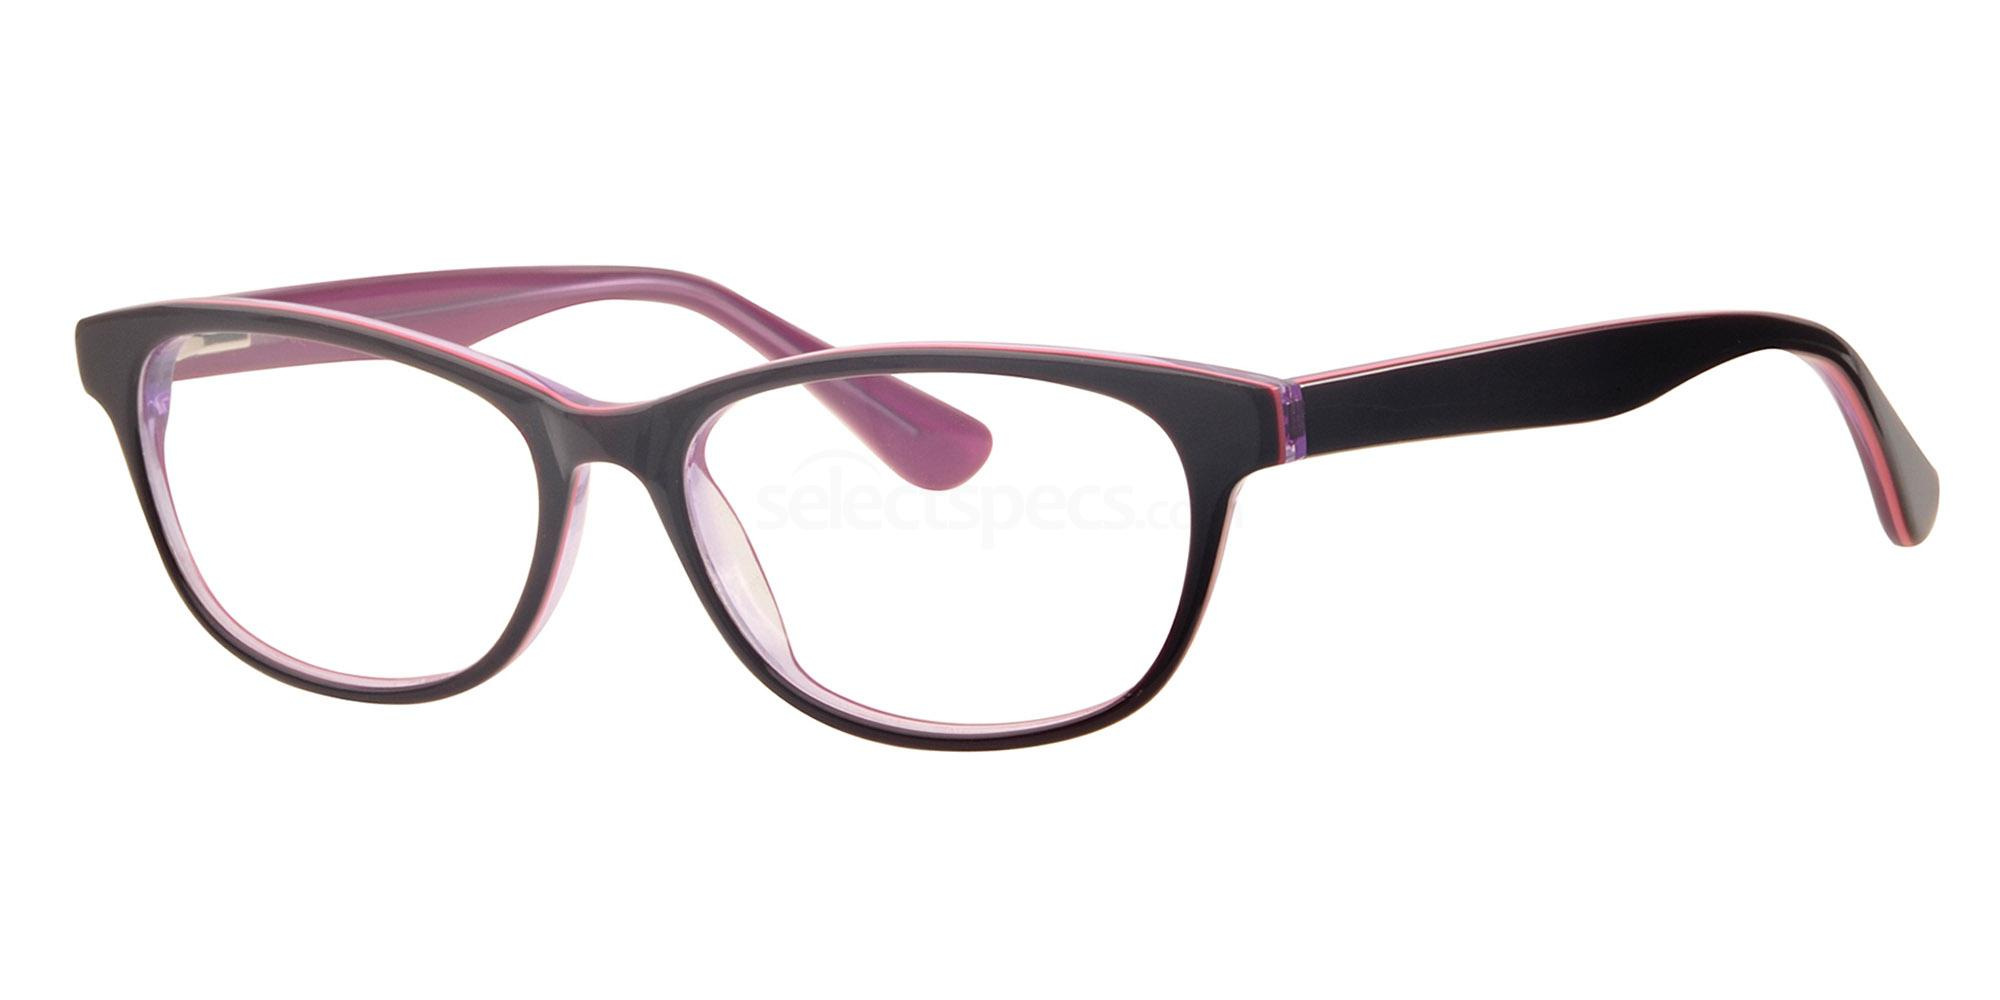 C09 388 Glasses, Visage Elite